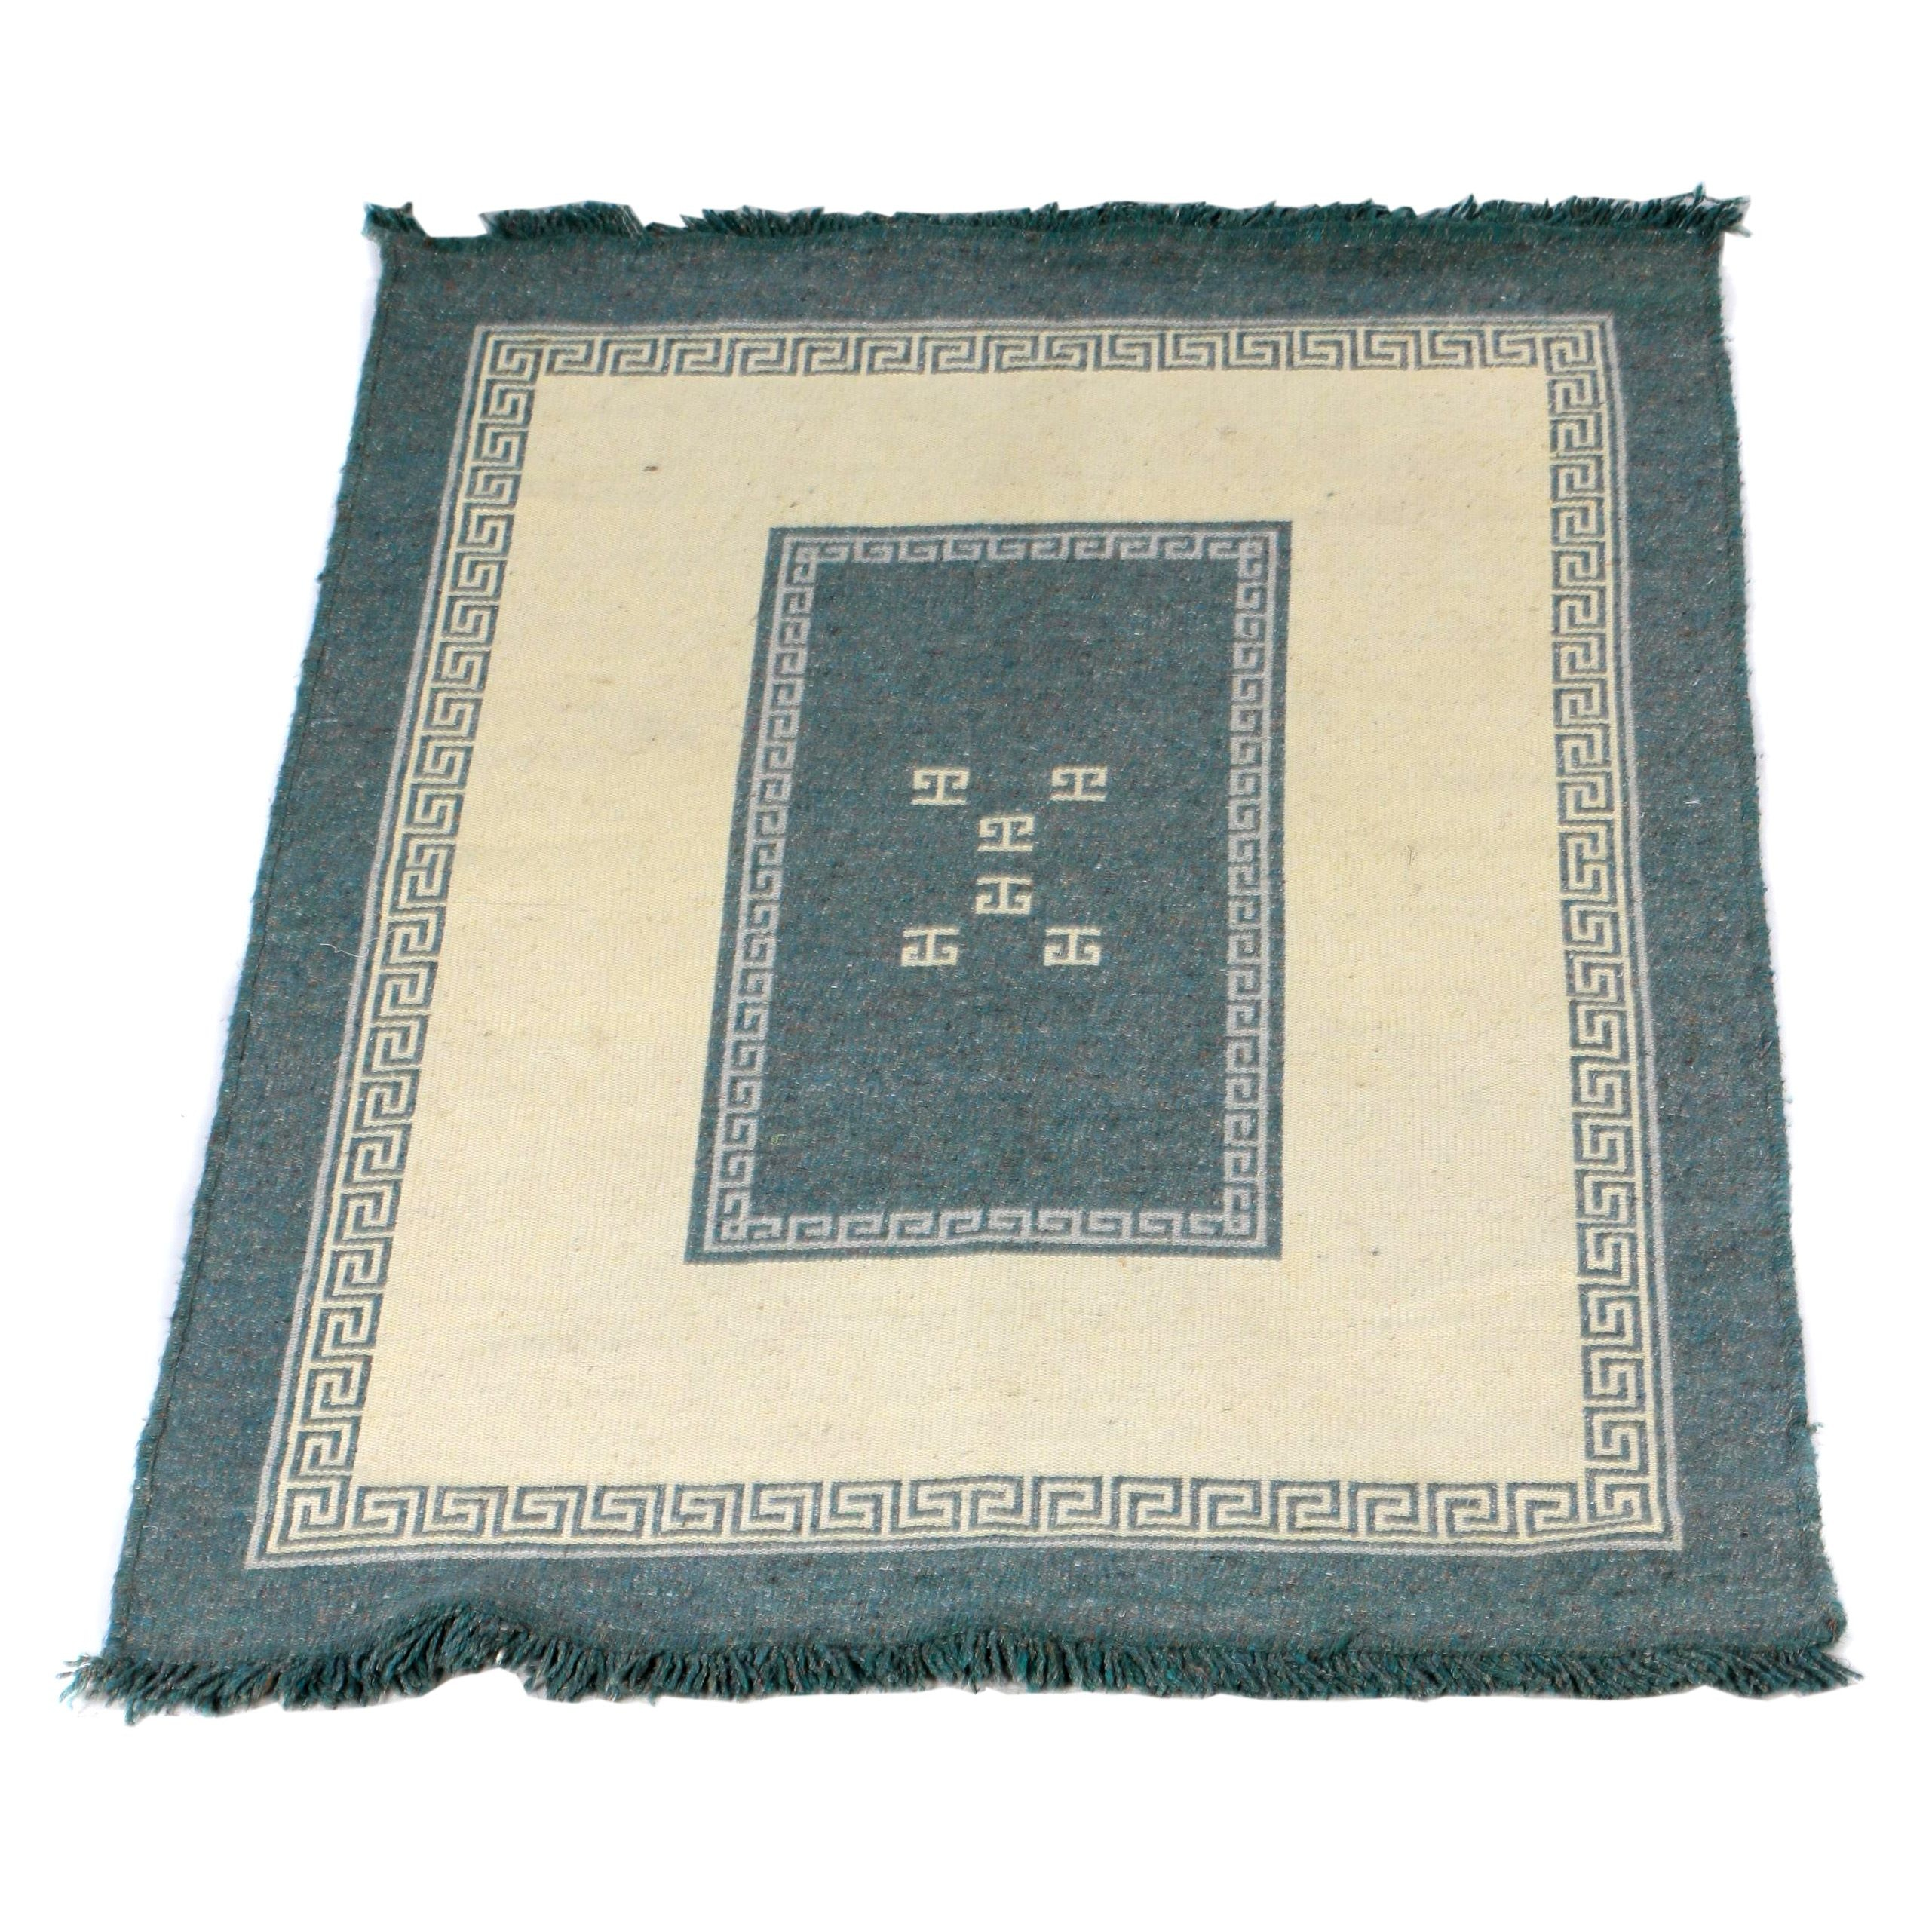 Handwoven Gray and White Meander Motif Area Rug